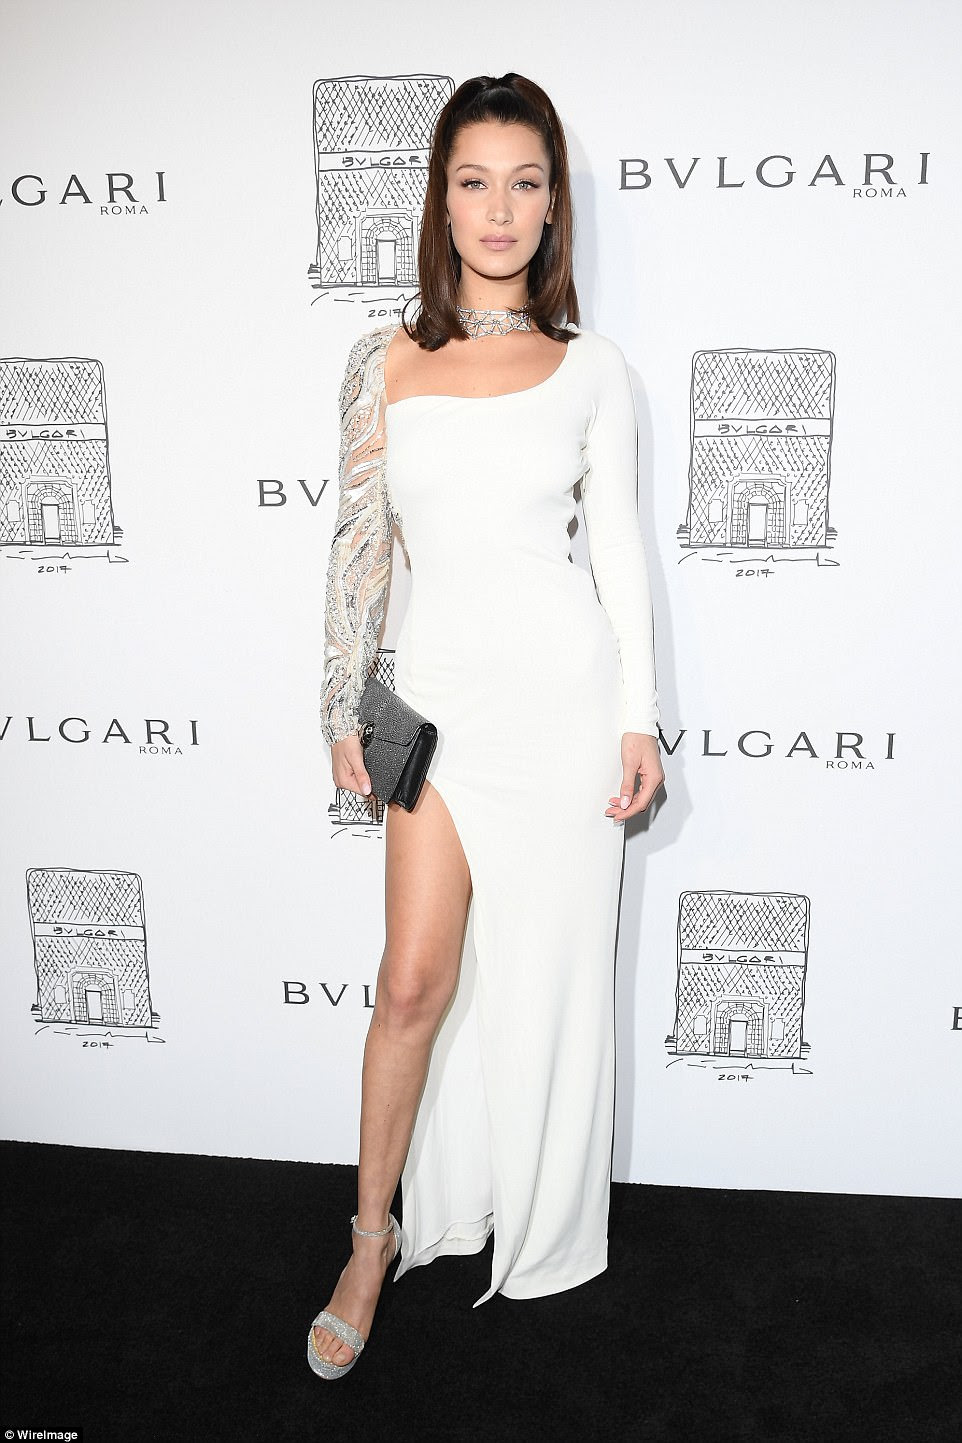 Stunning:Bella's bare back wasn't the only thing on full display as she showed off her model legs in the dress which featured a thigh-high split and asymmetric sleeves